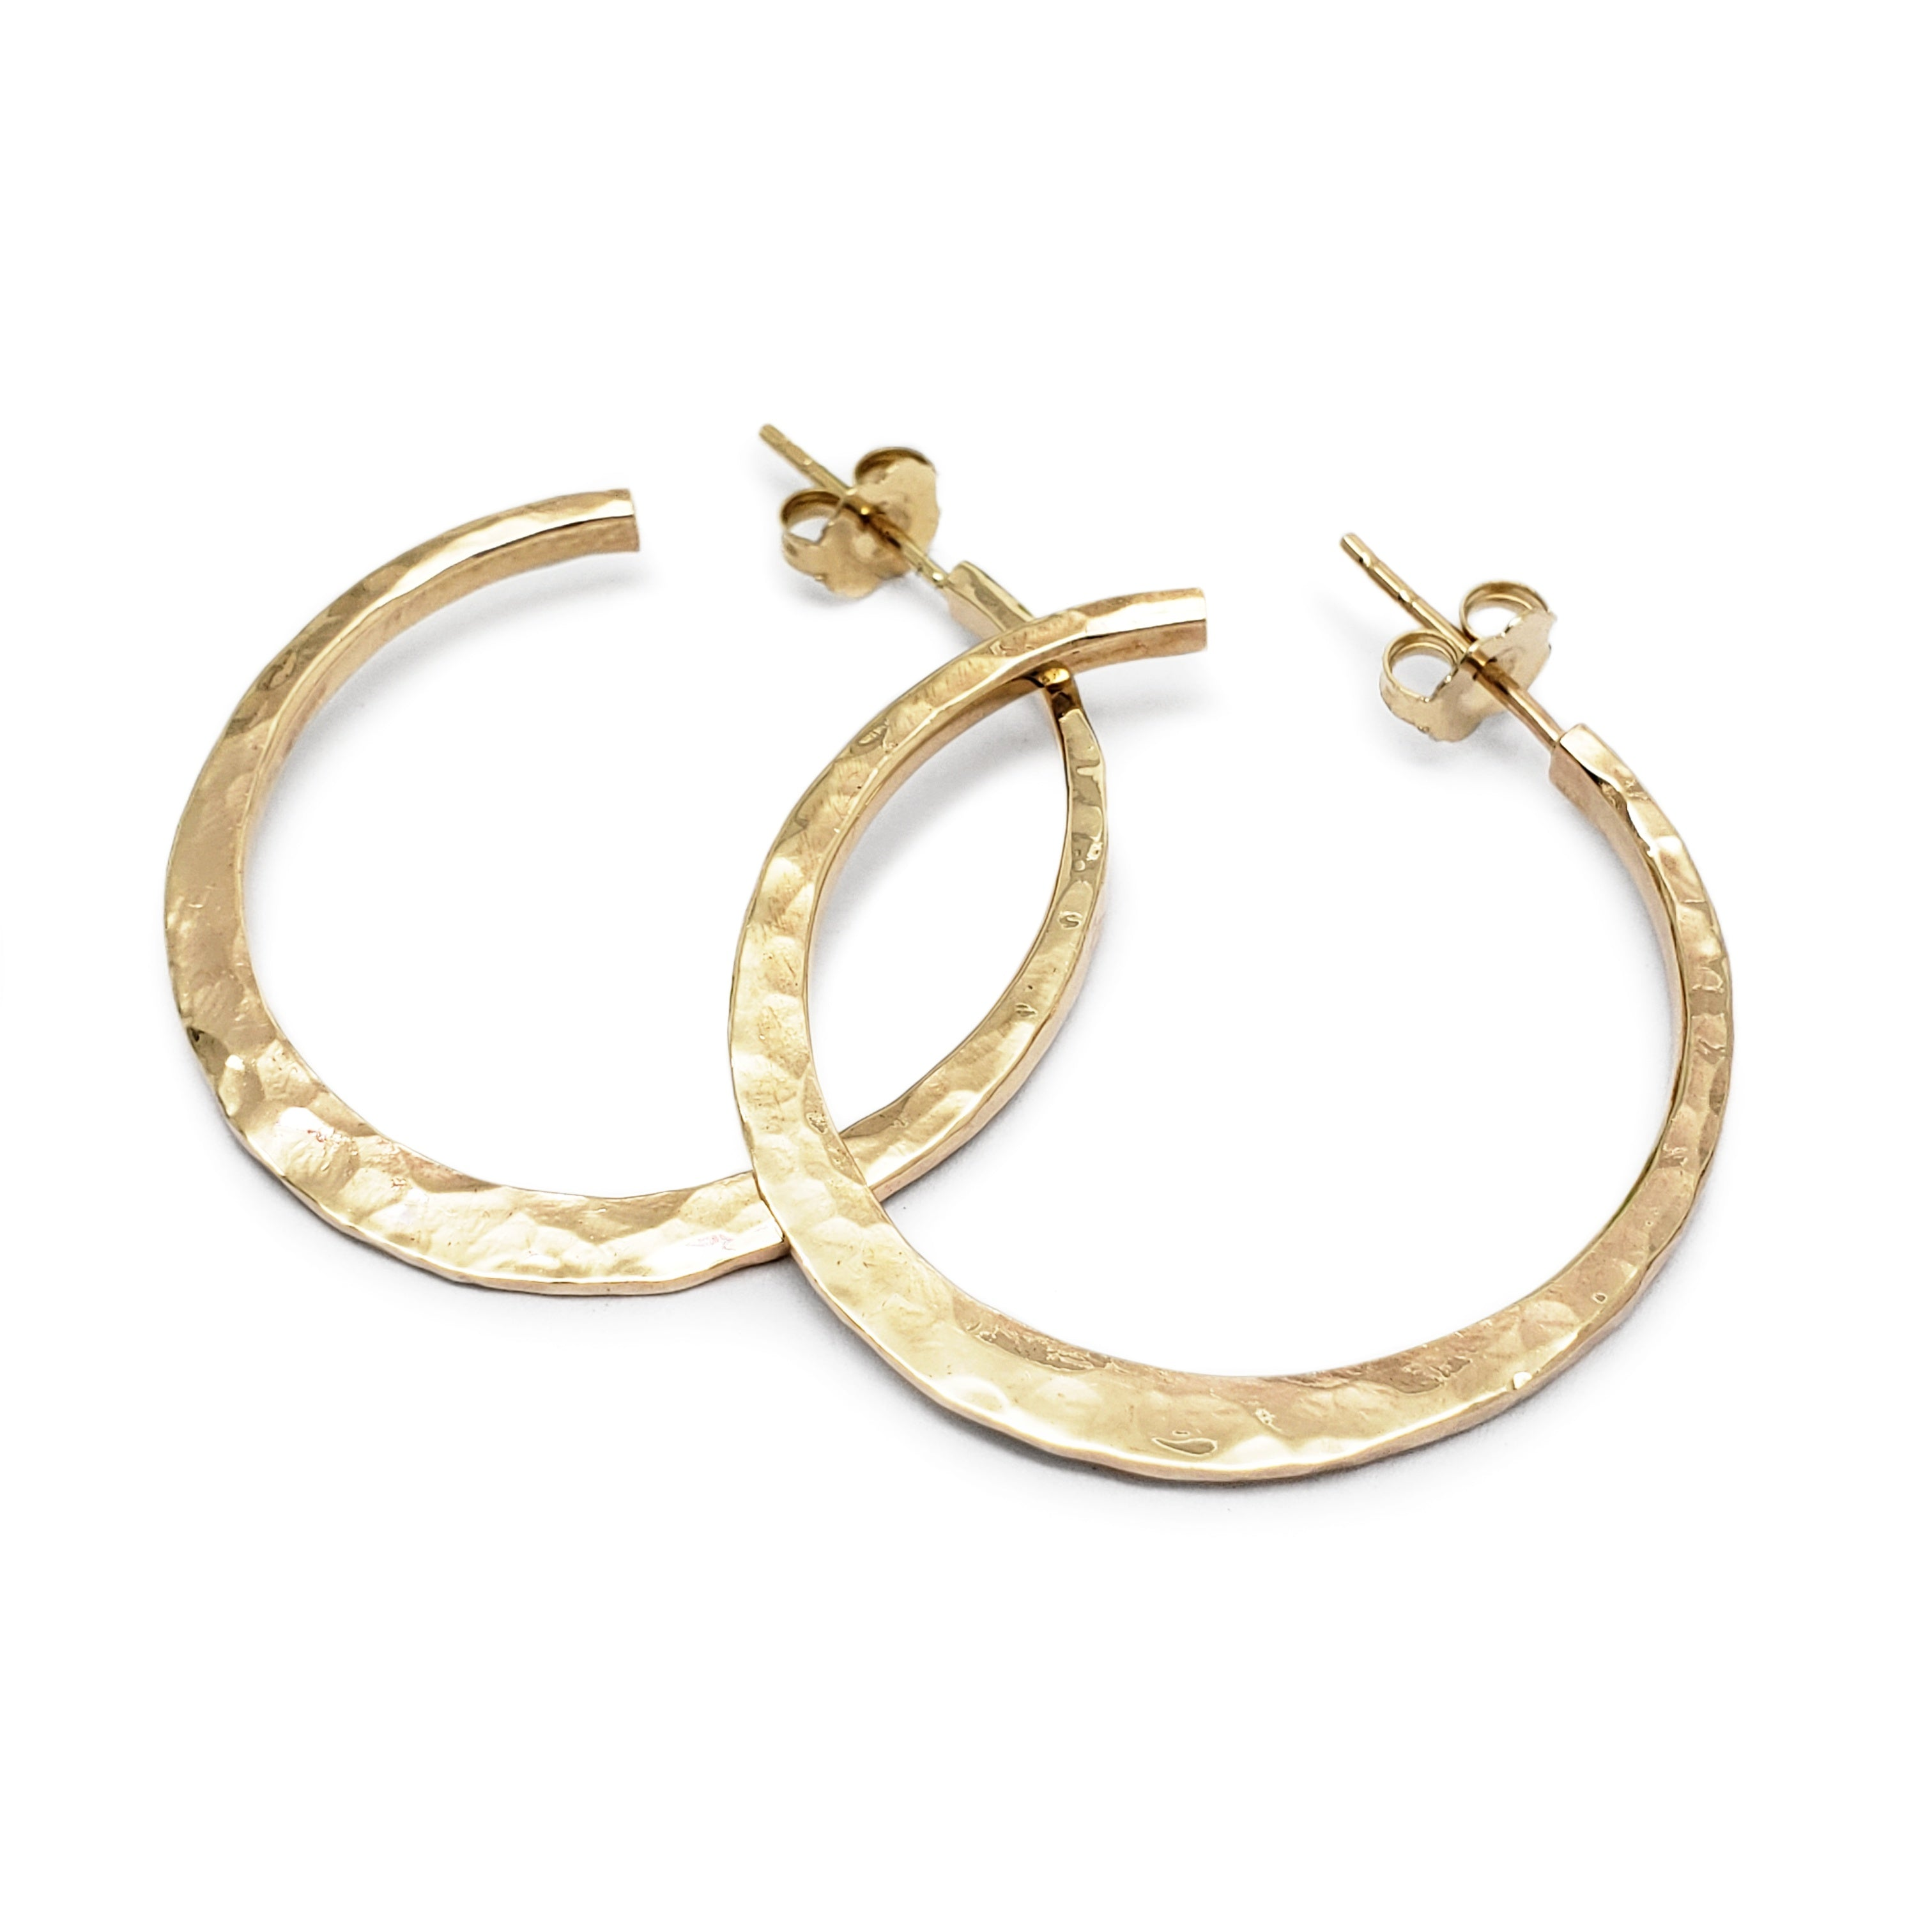 Yellow gold Hoop Earrings | Era Design Vancouver Canada